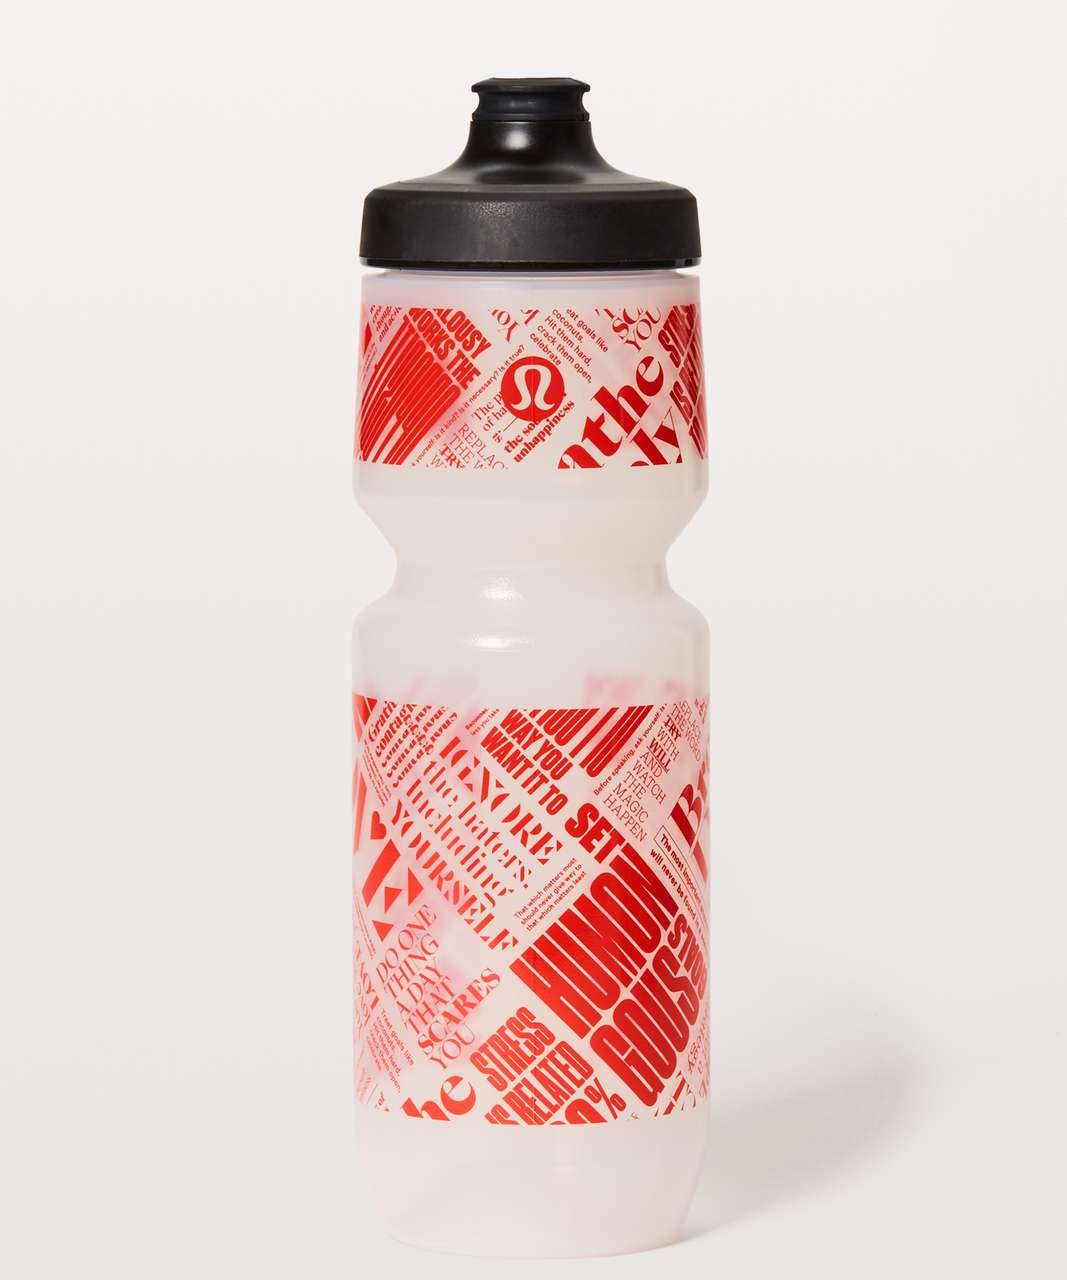 Lululemon Purist Cycling Water Bottle *20Y Collection - Purist 20Y